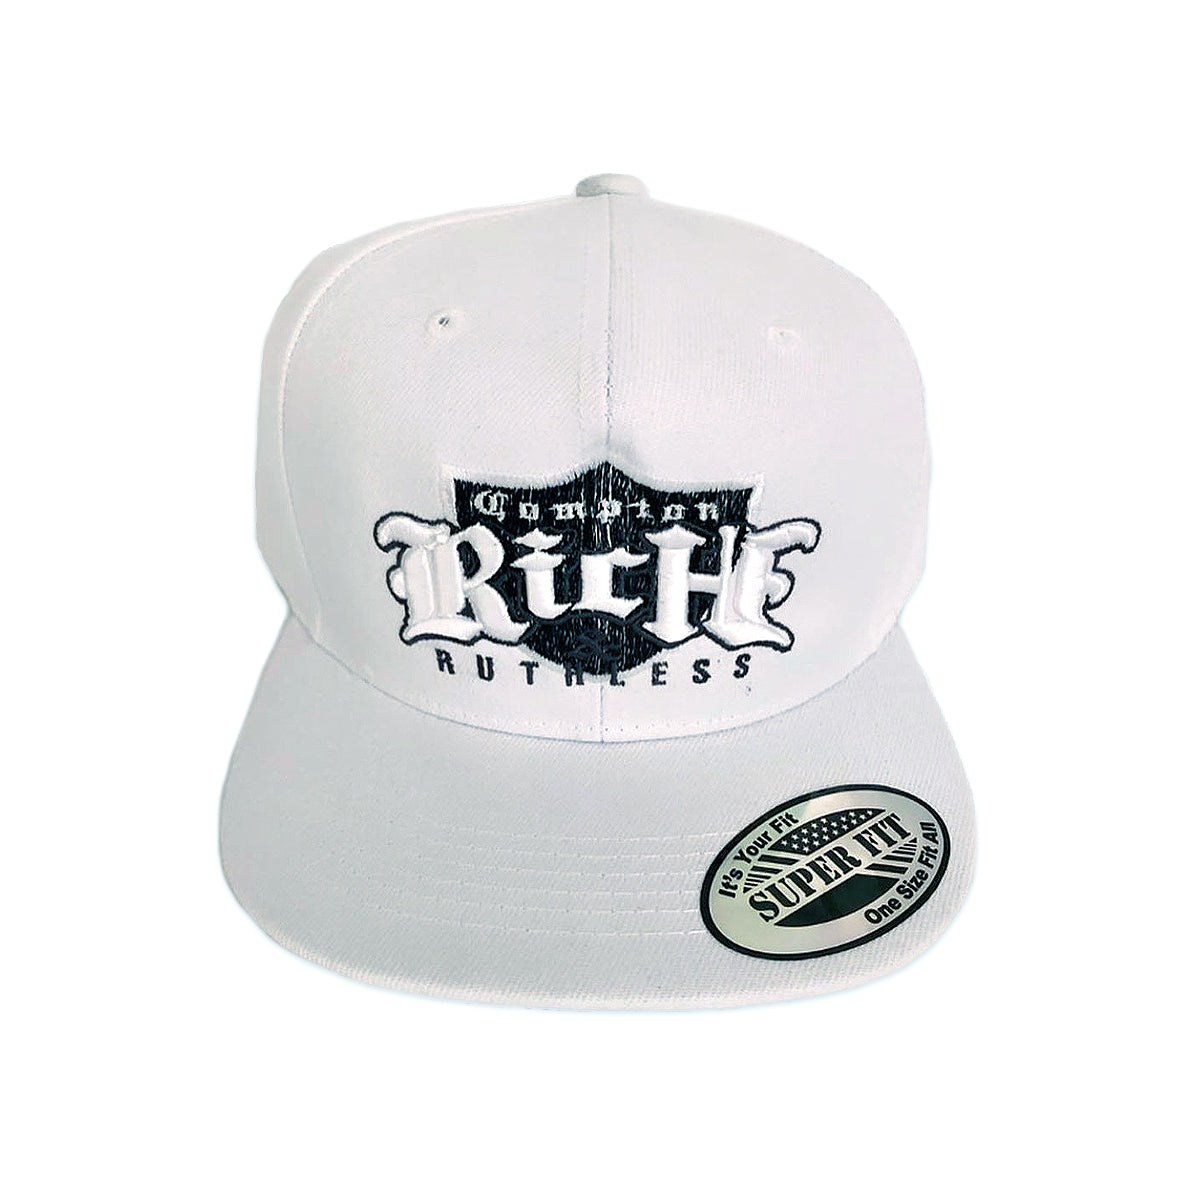 Rich & Ruthless Compton Crest Hat (White)